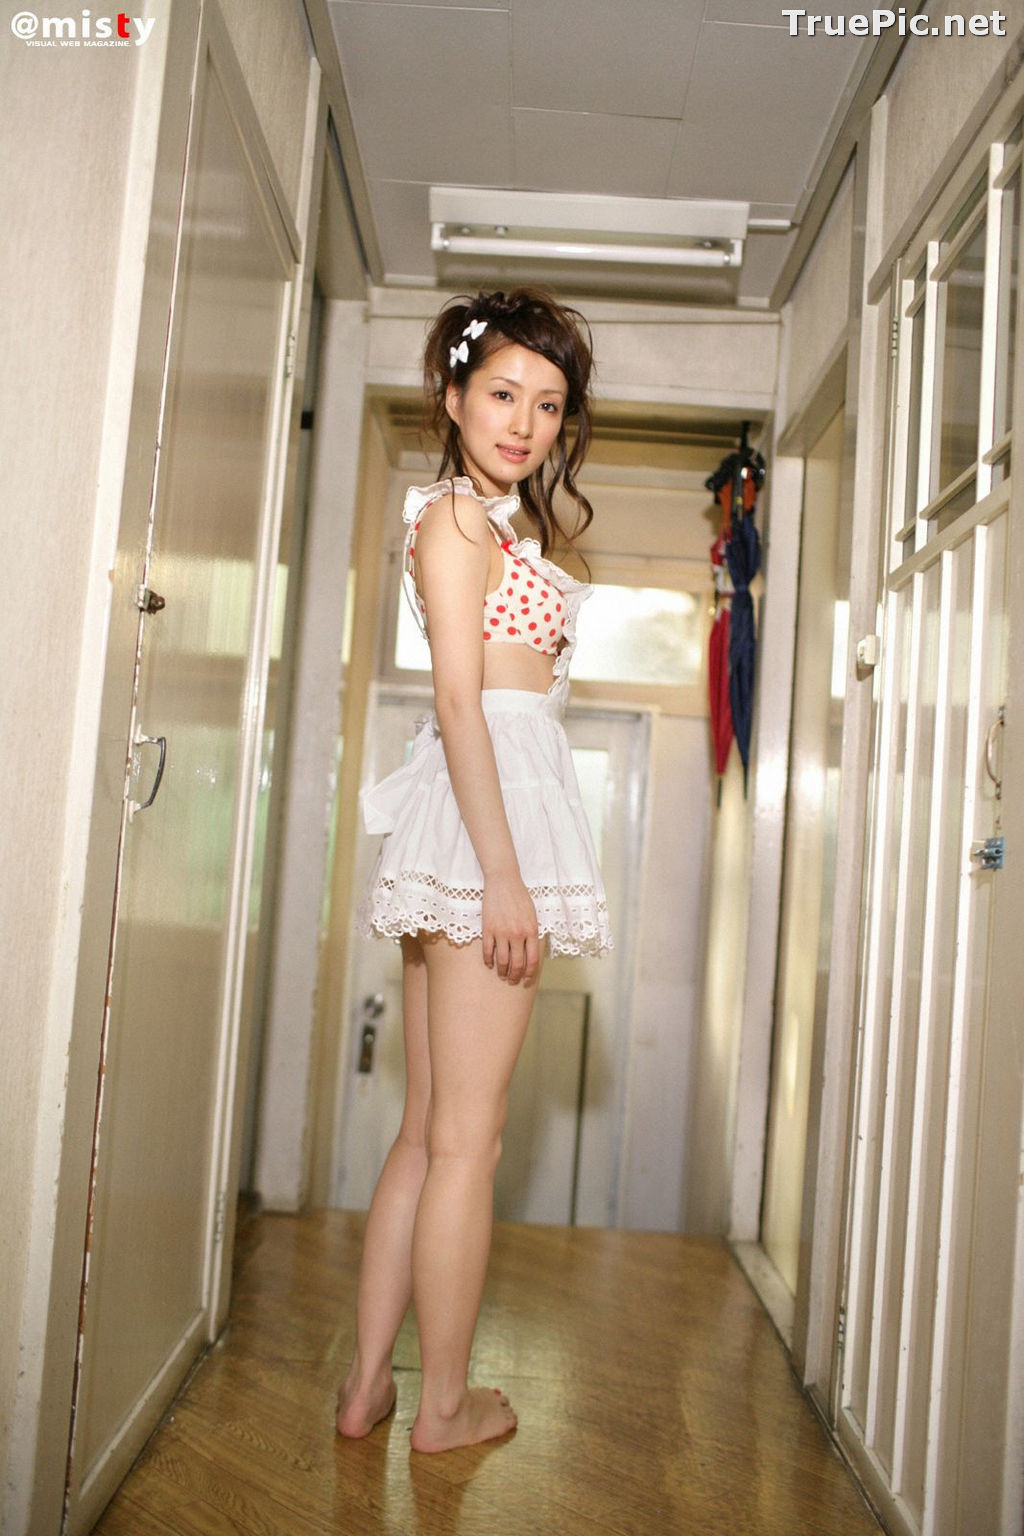 Image Misty No.217 - Japanese Actress and Gravure Idol - Saki Seto - TruePic.net - Picture-9